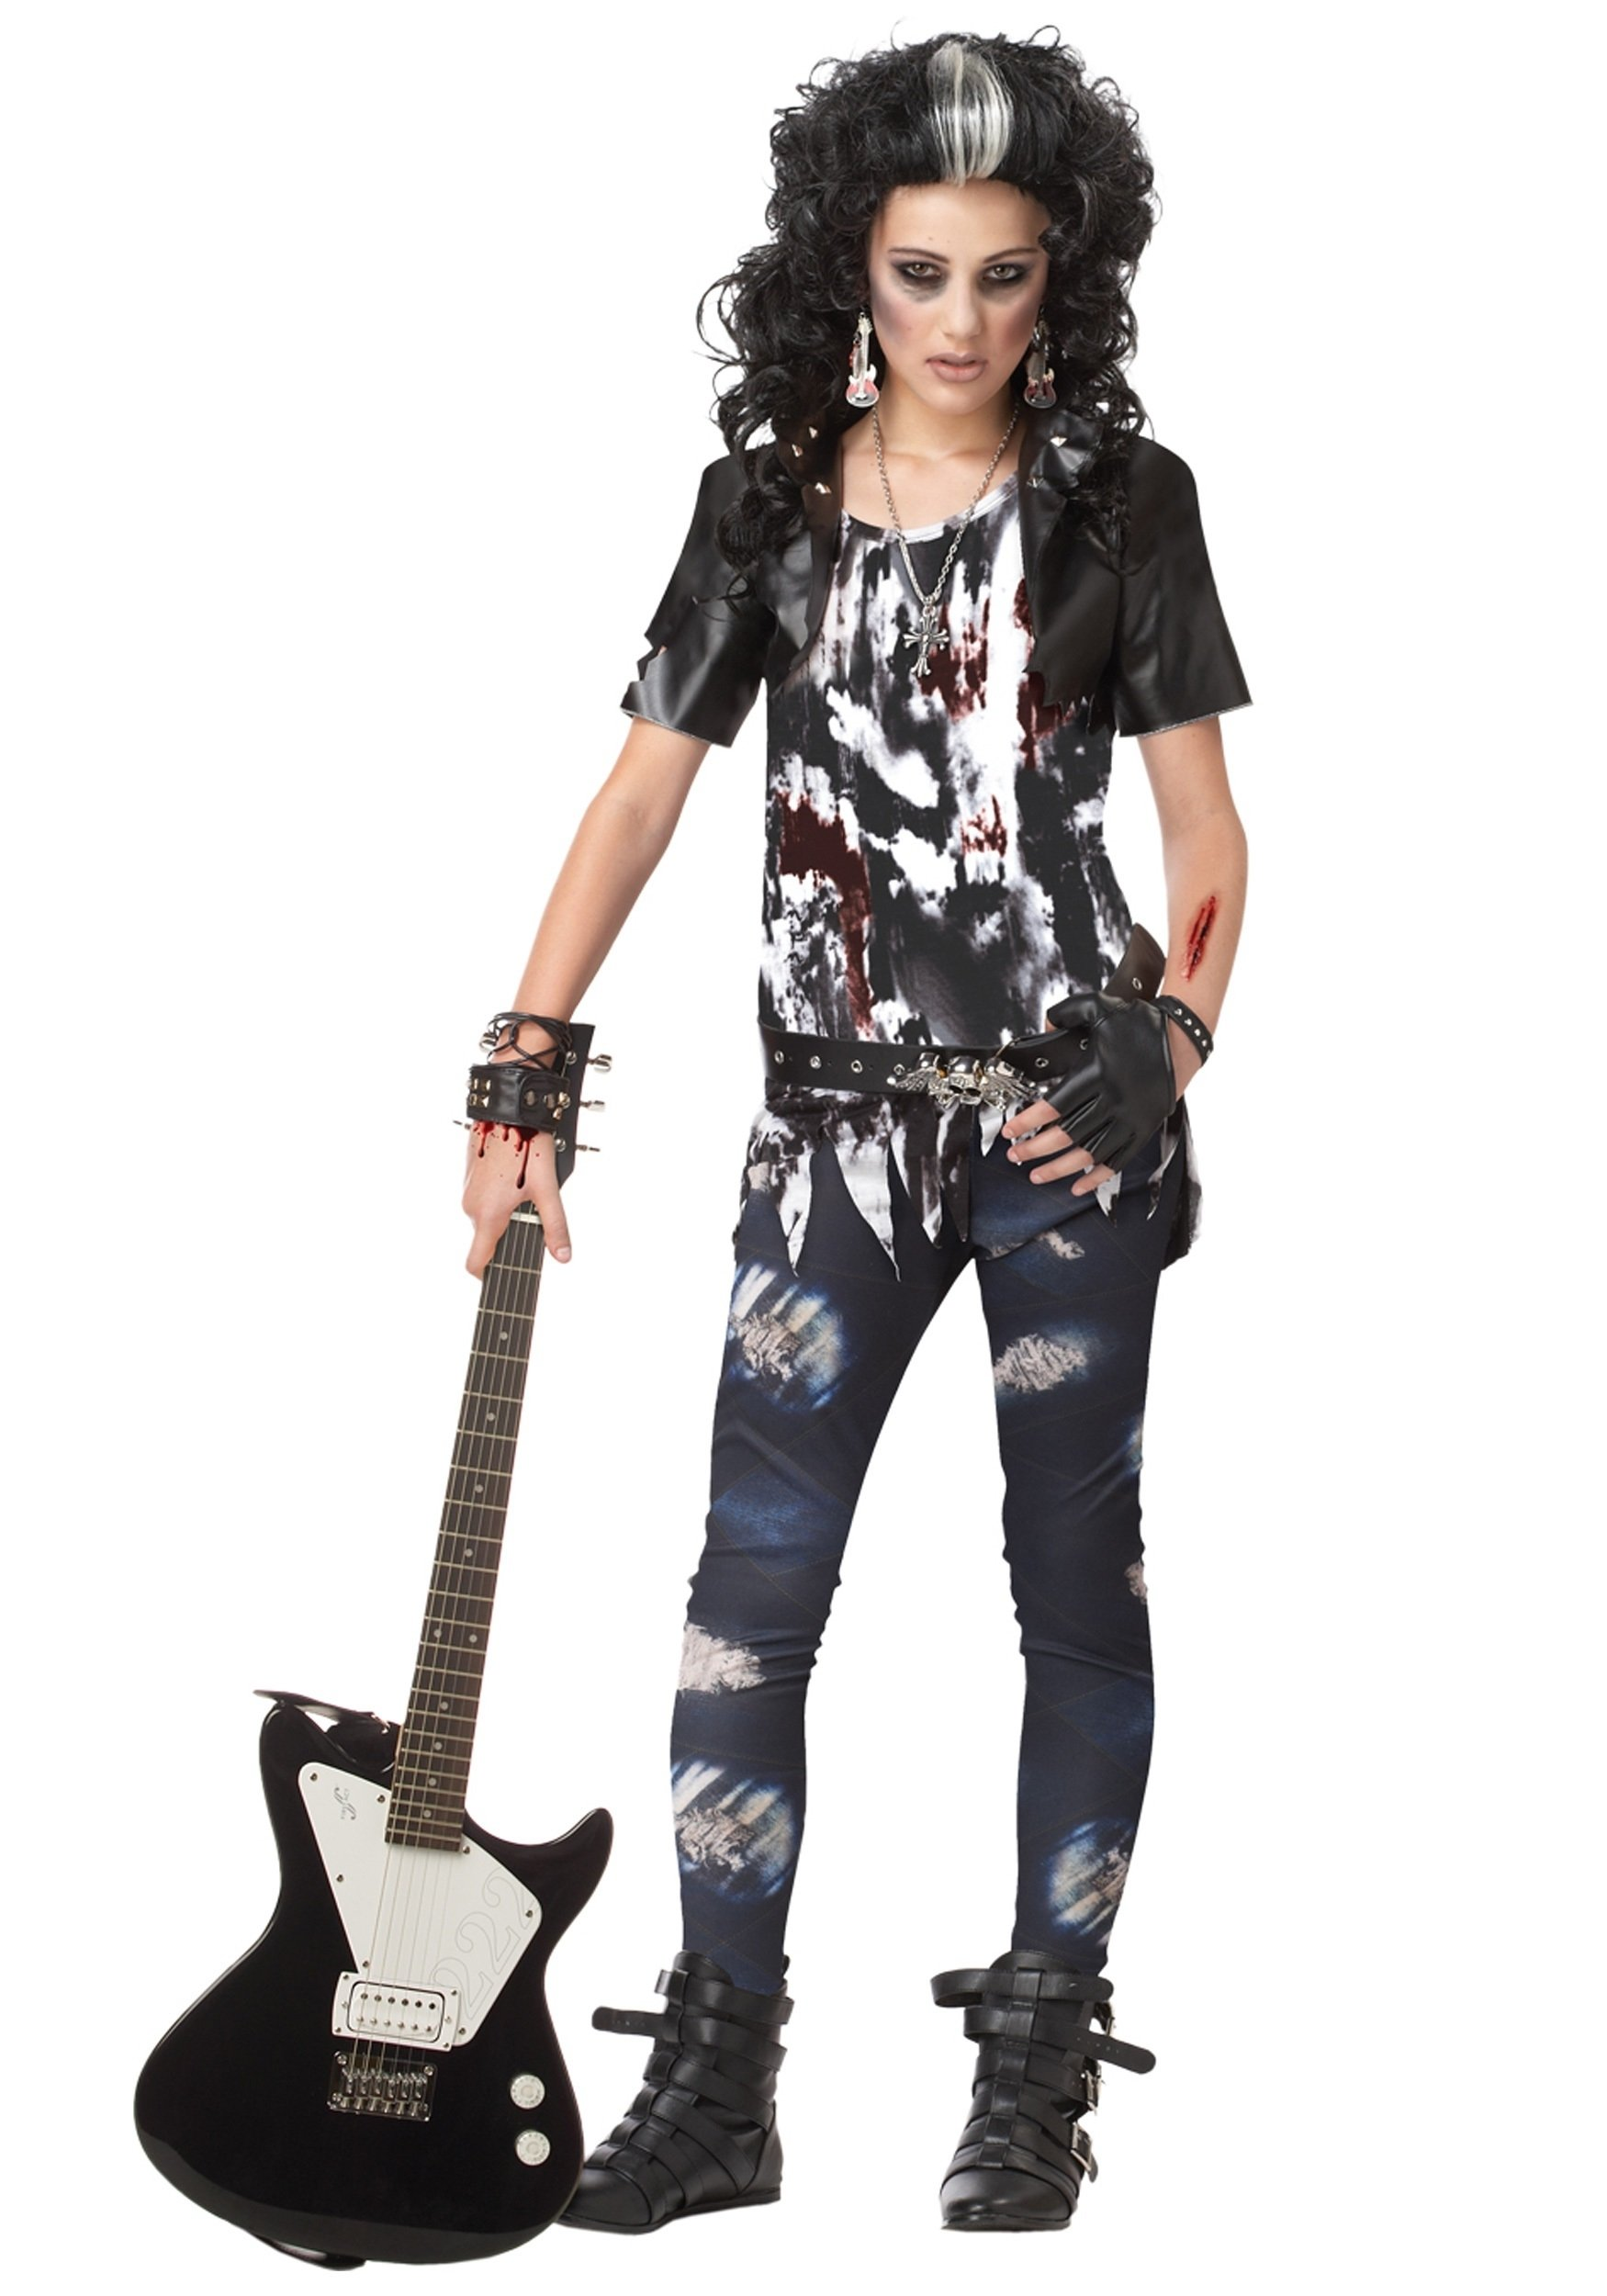 10 Pretty Rock Star Halloween Costume Ideas girls rock star halloween costume costume ideas classic  sc 1 st  Unique Ideas 2018 & 10 Pretty Rock Star Halloween Costume Ideas